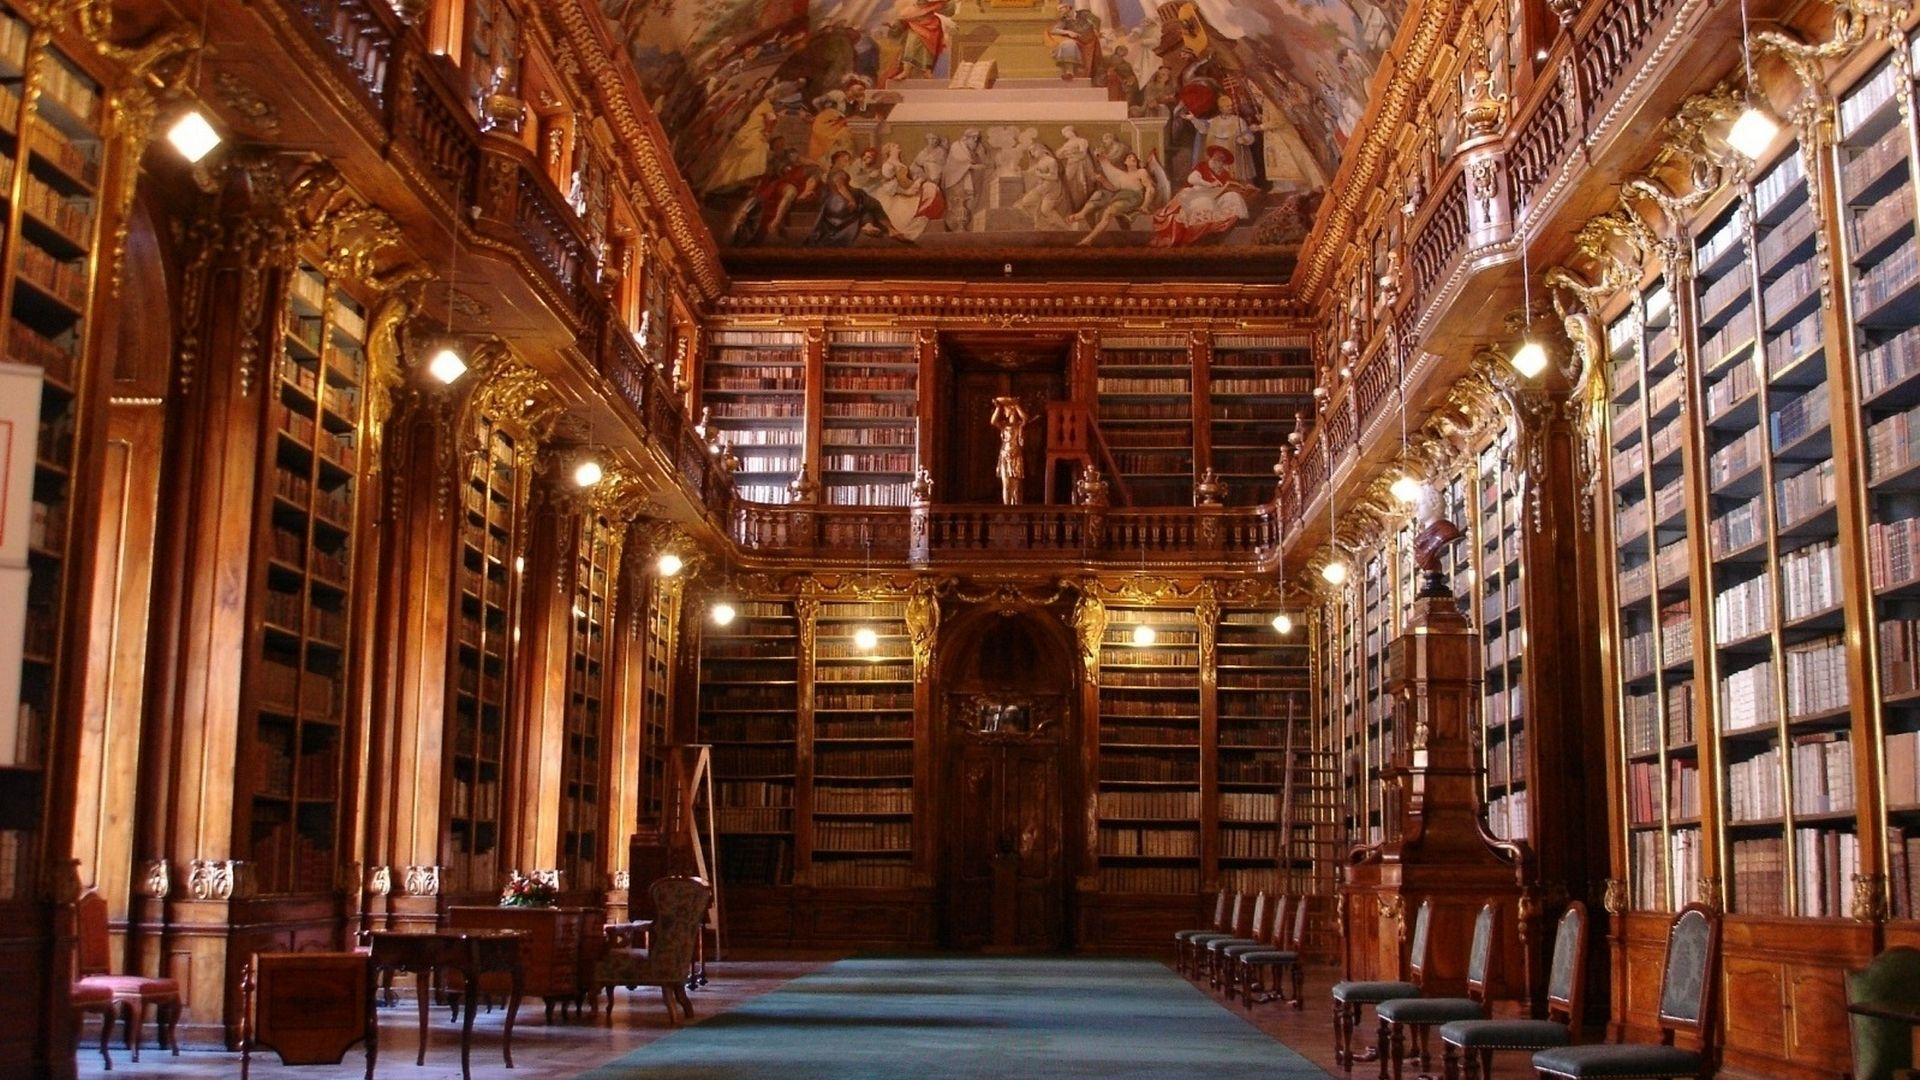 Old Library wallpaper | ℬooks ㋡ ℳania | Pinterest